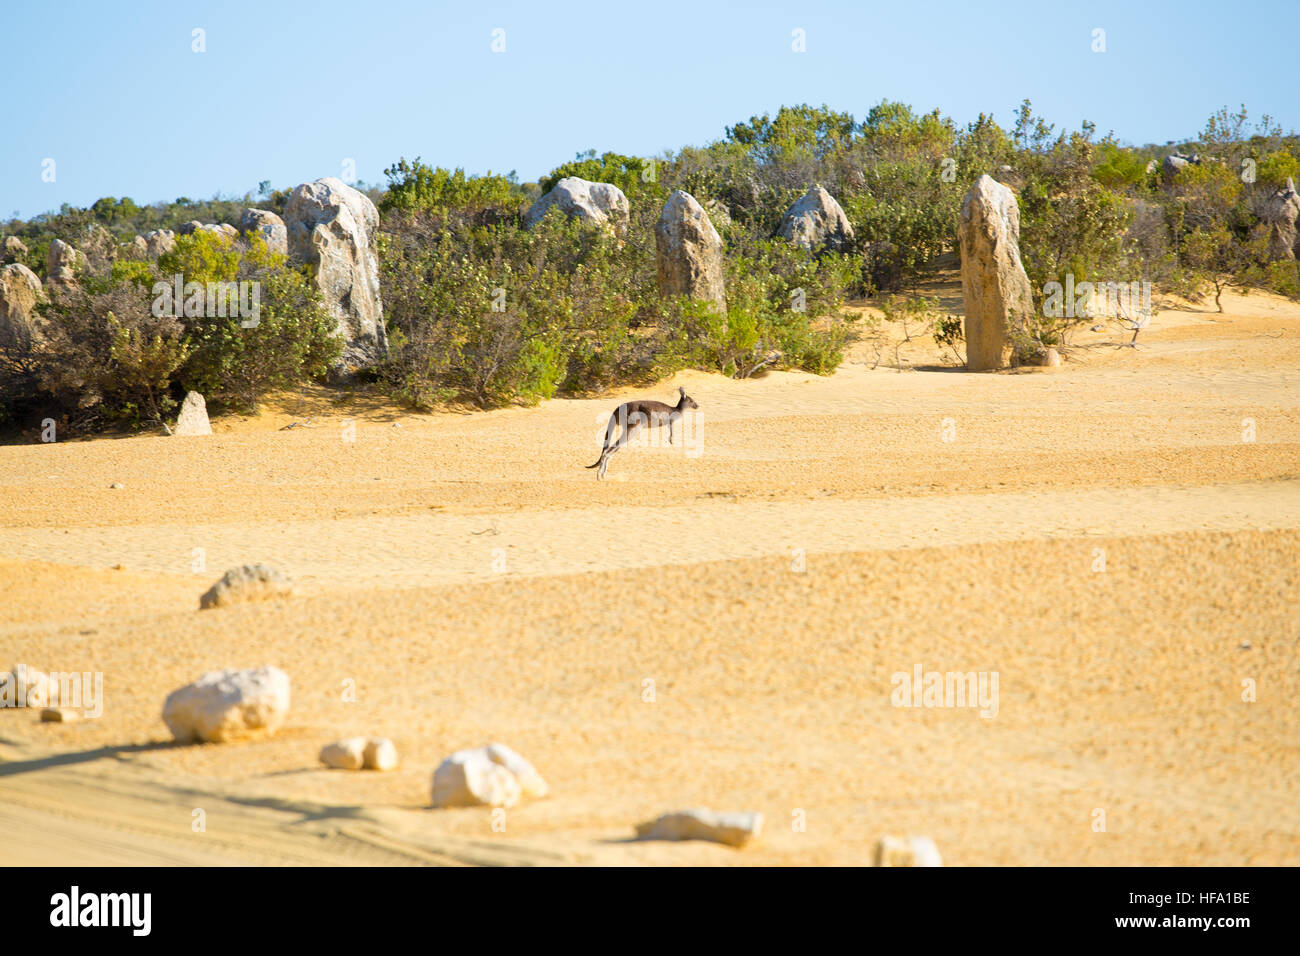 Kangaroo at the Pinnacles desert, Western Australia - Stock Image